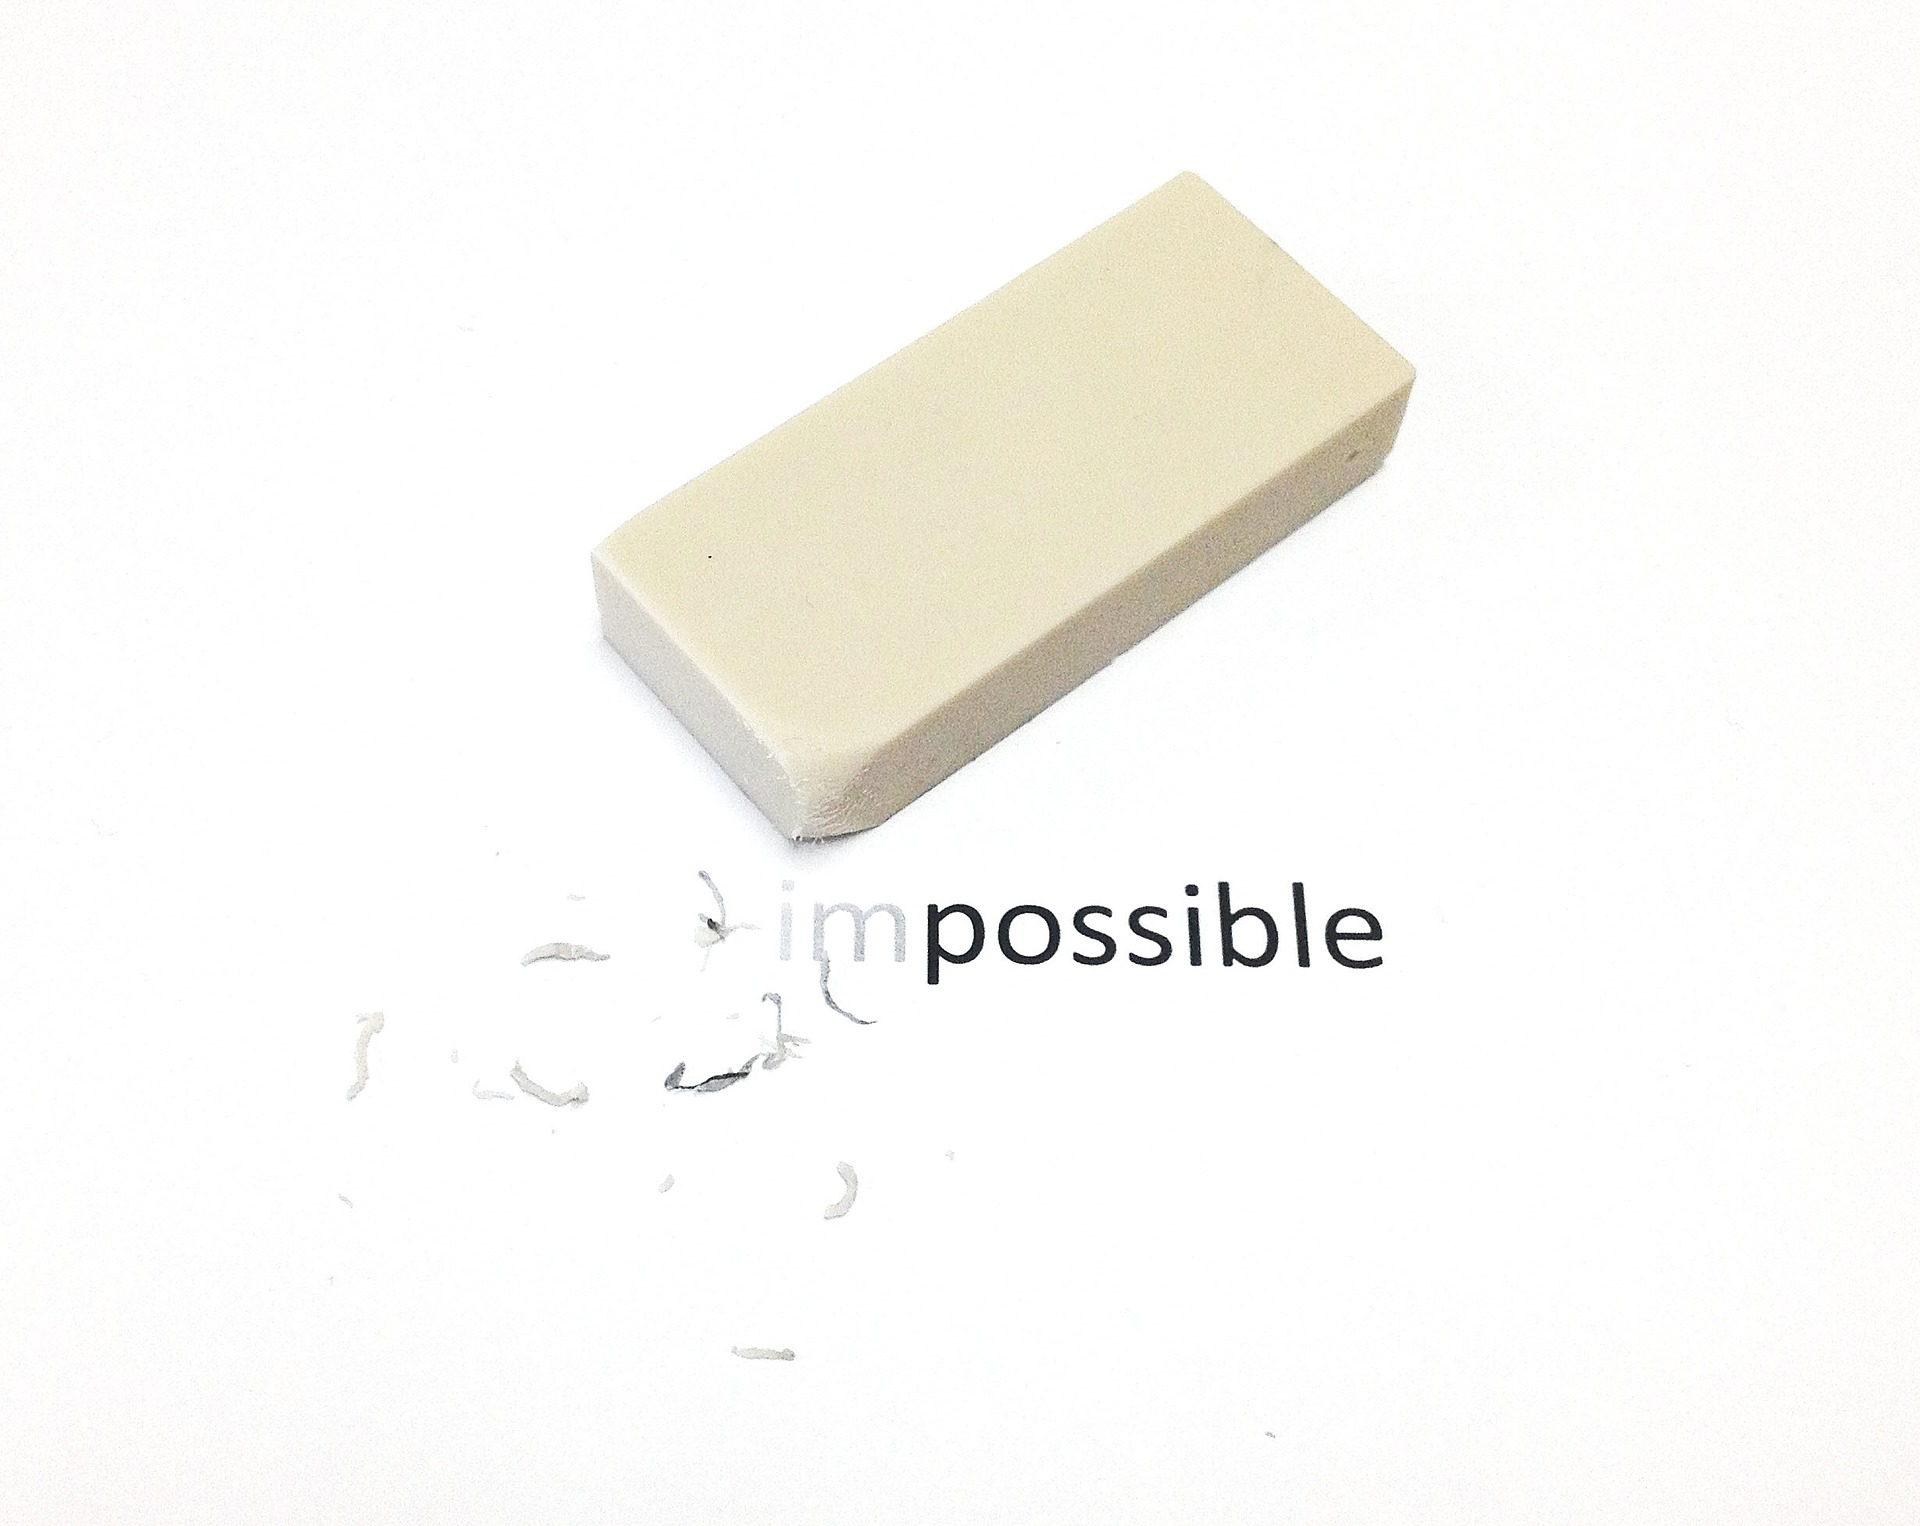 """erasing """"im"""" from """"impossible"""""""